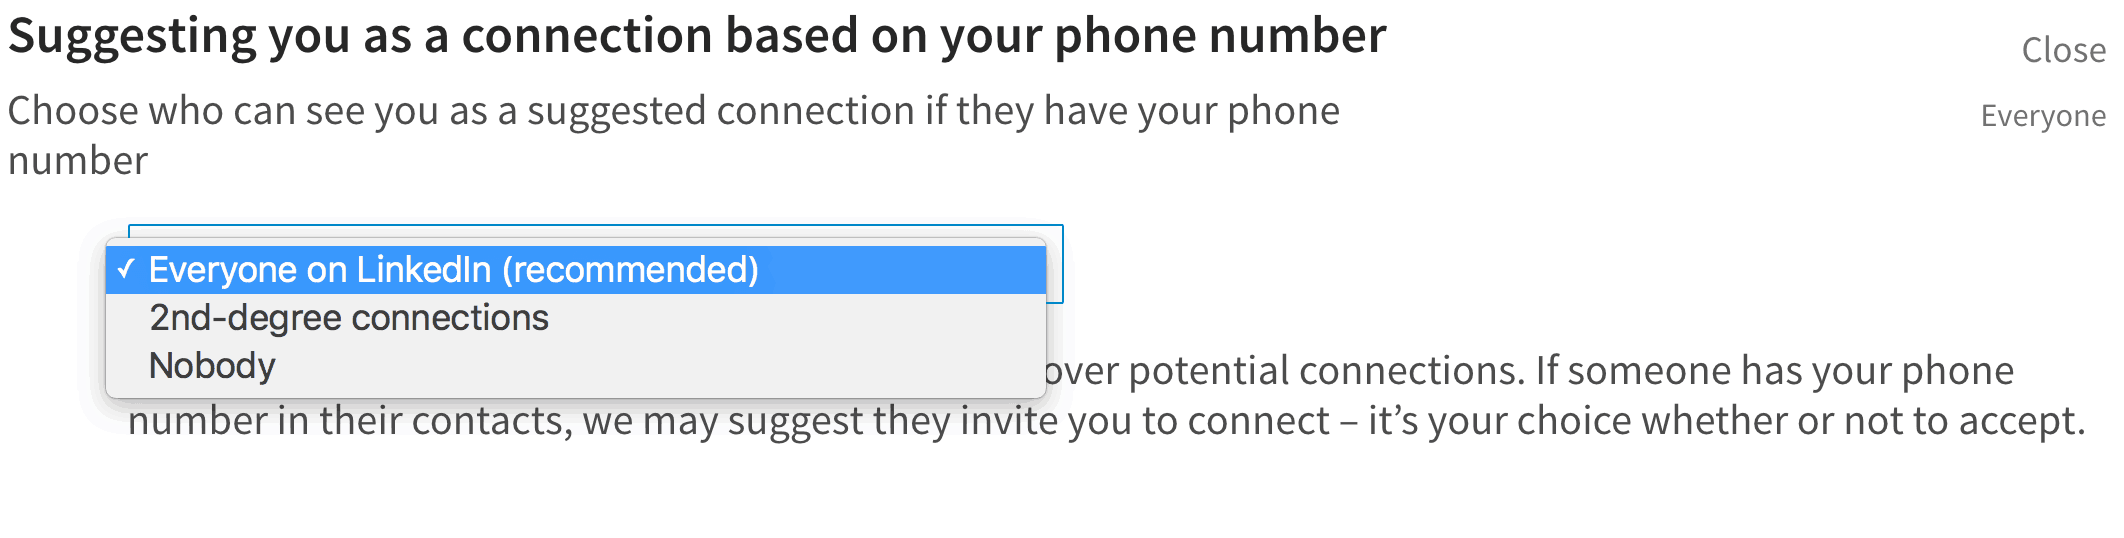 You can also choose if you would like to allow LinkedIn to suggest you as a connection to people who have your phone number under the Suggesting you as a connection based on your phone number section.